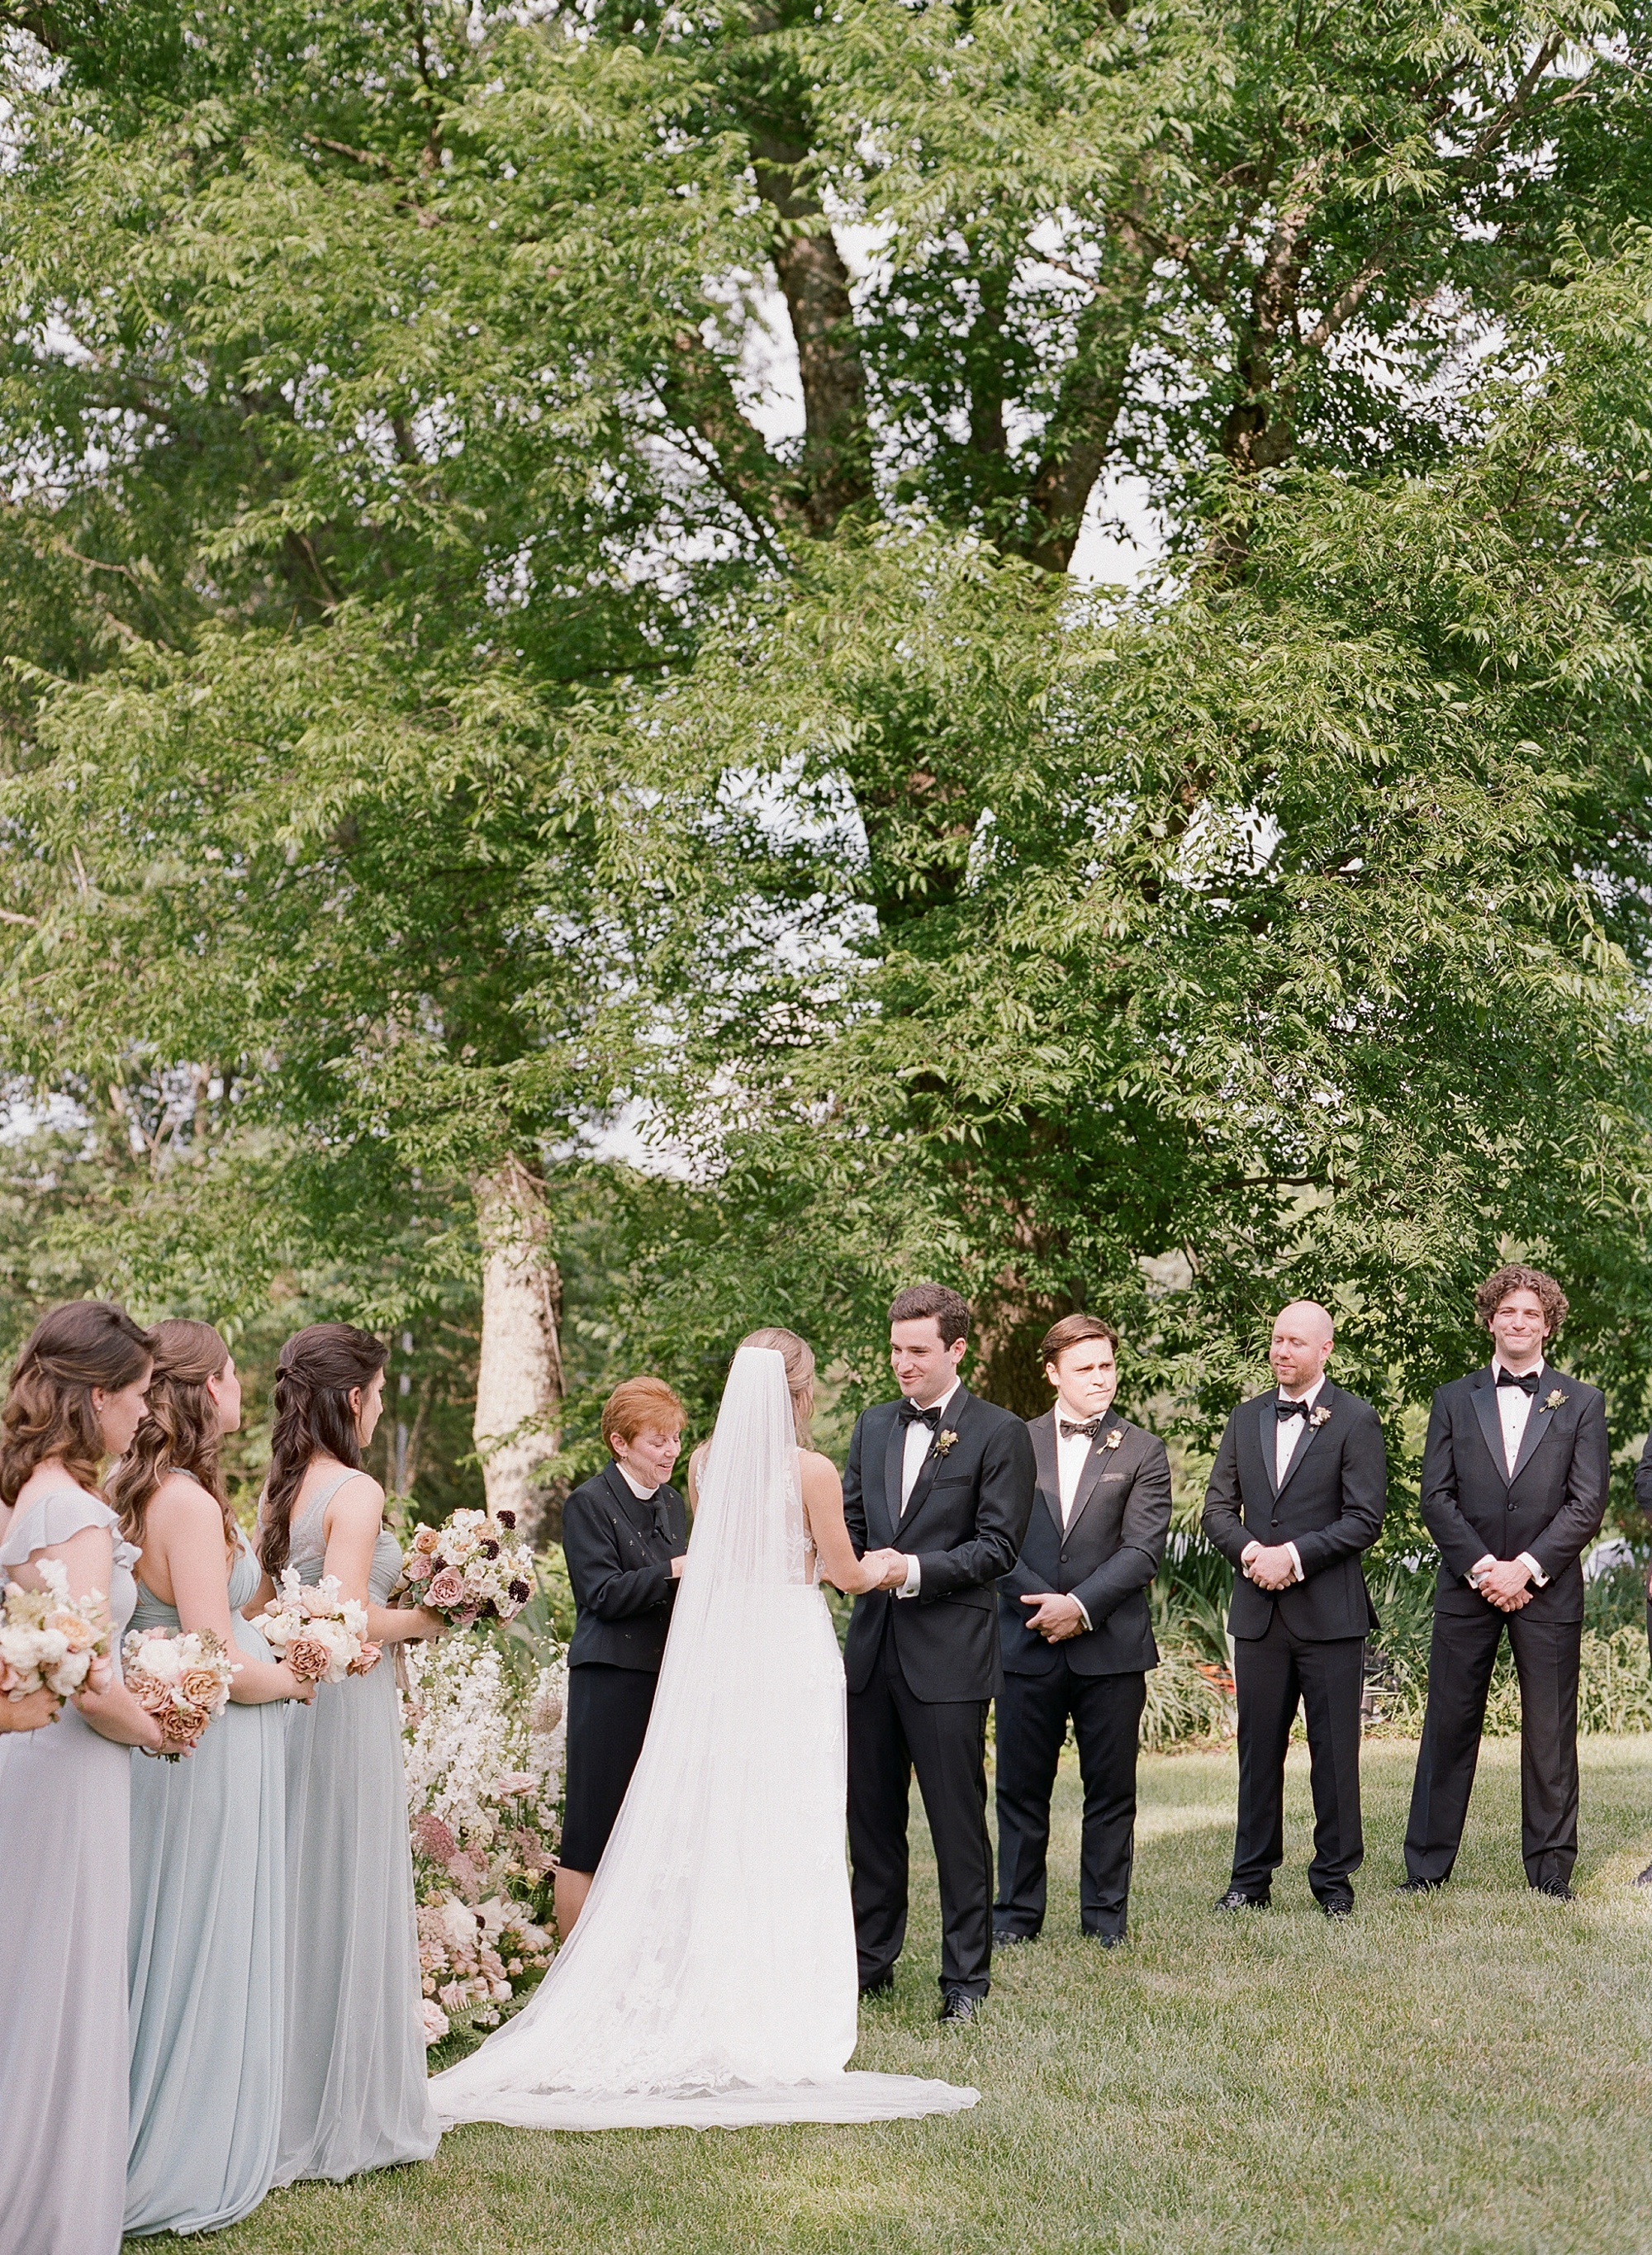 elisa-bricker-charlottesville-virginia-wedding-photographer-clifton-summer045.jpg